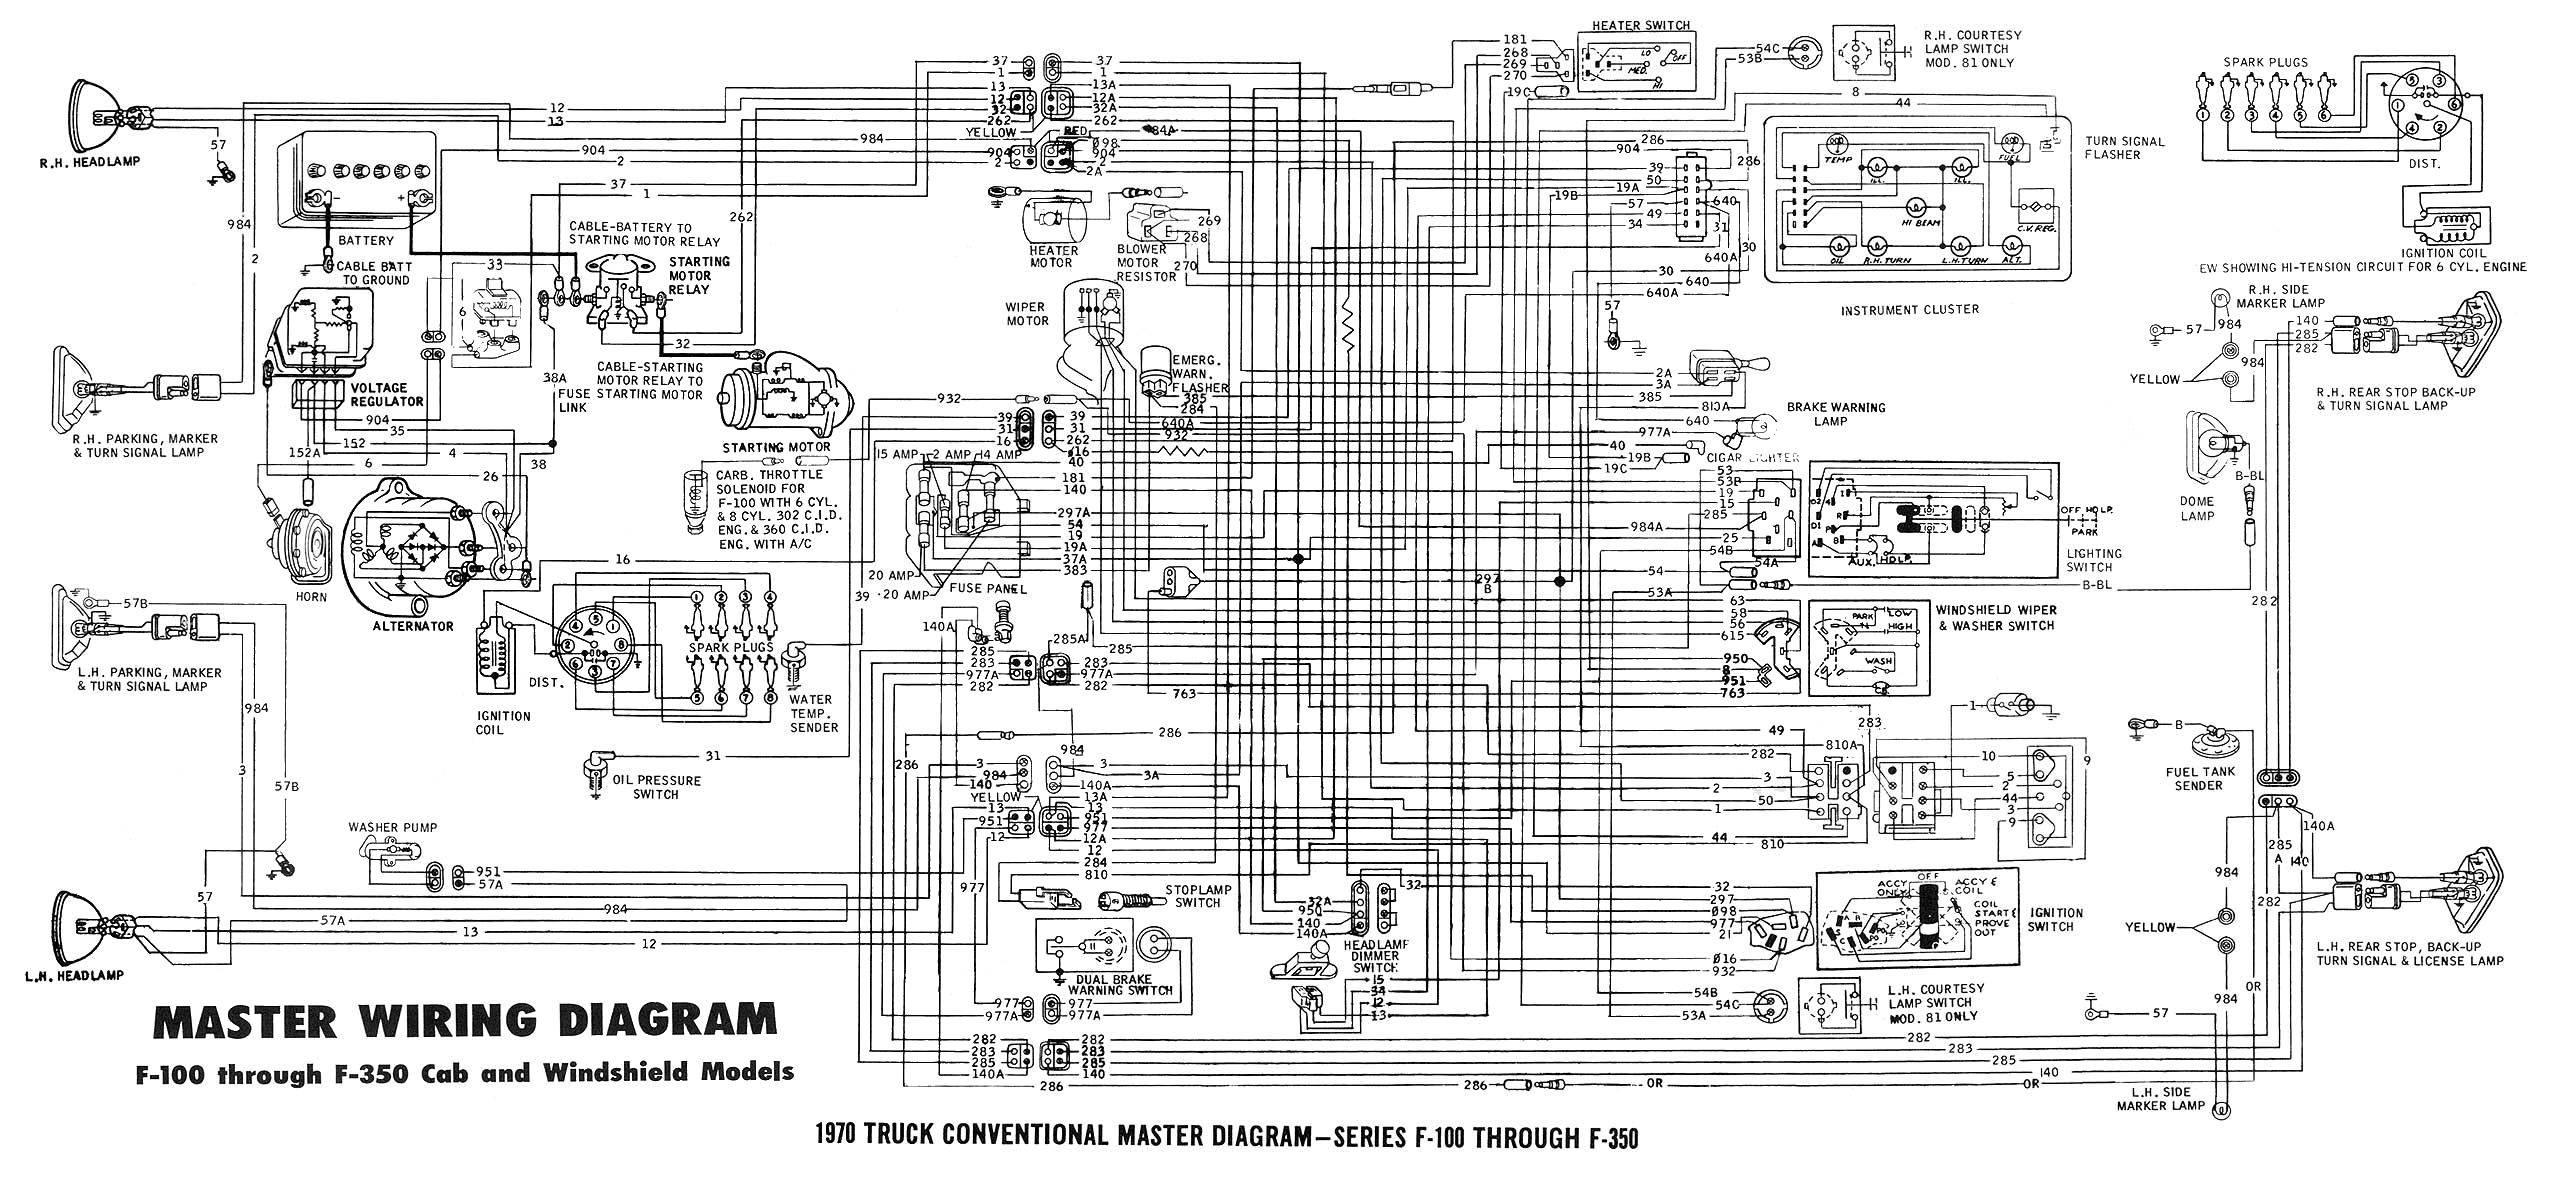 1994 ford f 150 wiring diagram ford factory wiring diagrams ford f150 wiring diagram ford wiring diagrams